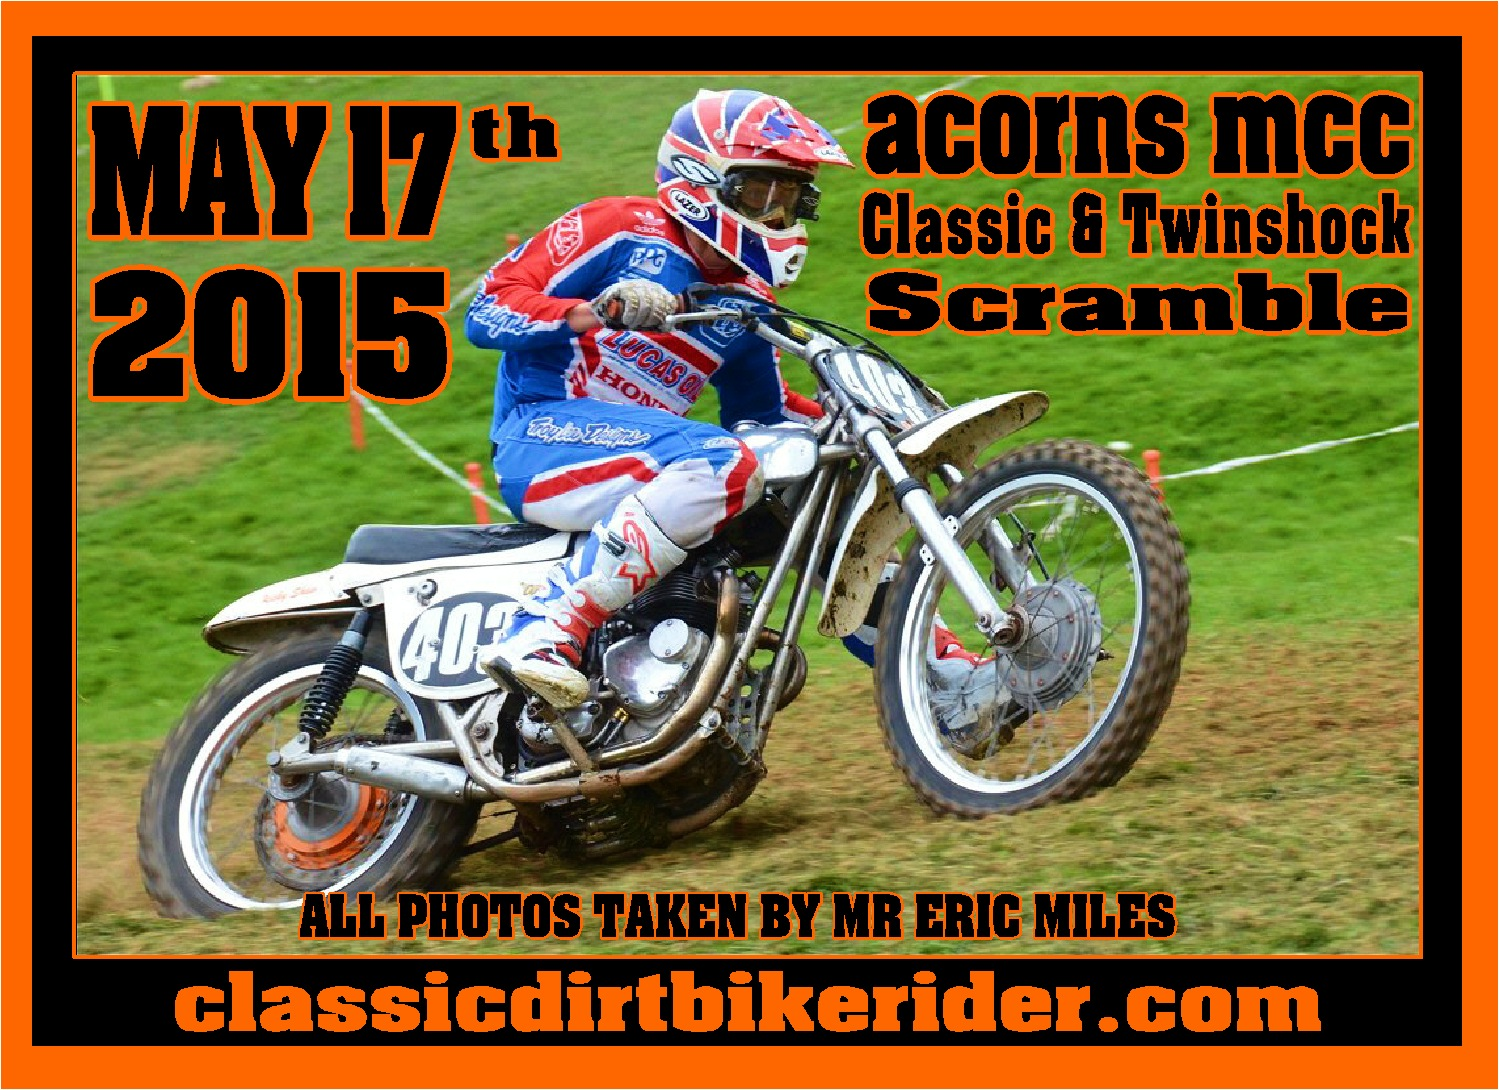 classicdirtbikerider.com acorns mcc classic & twinshock scramble may 17th 2015